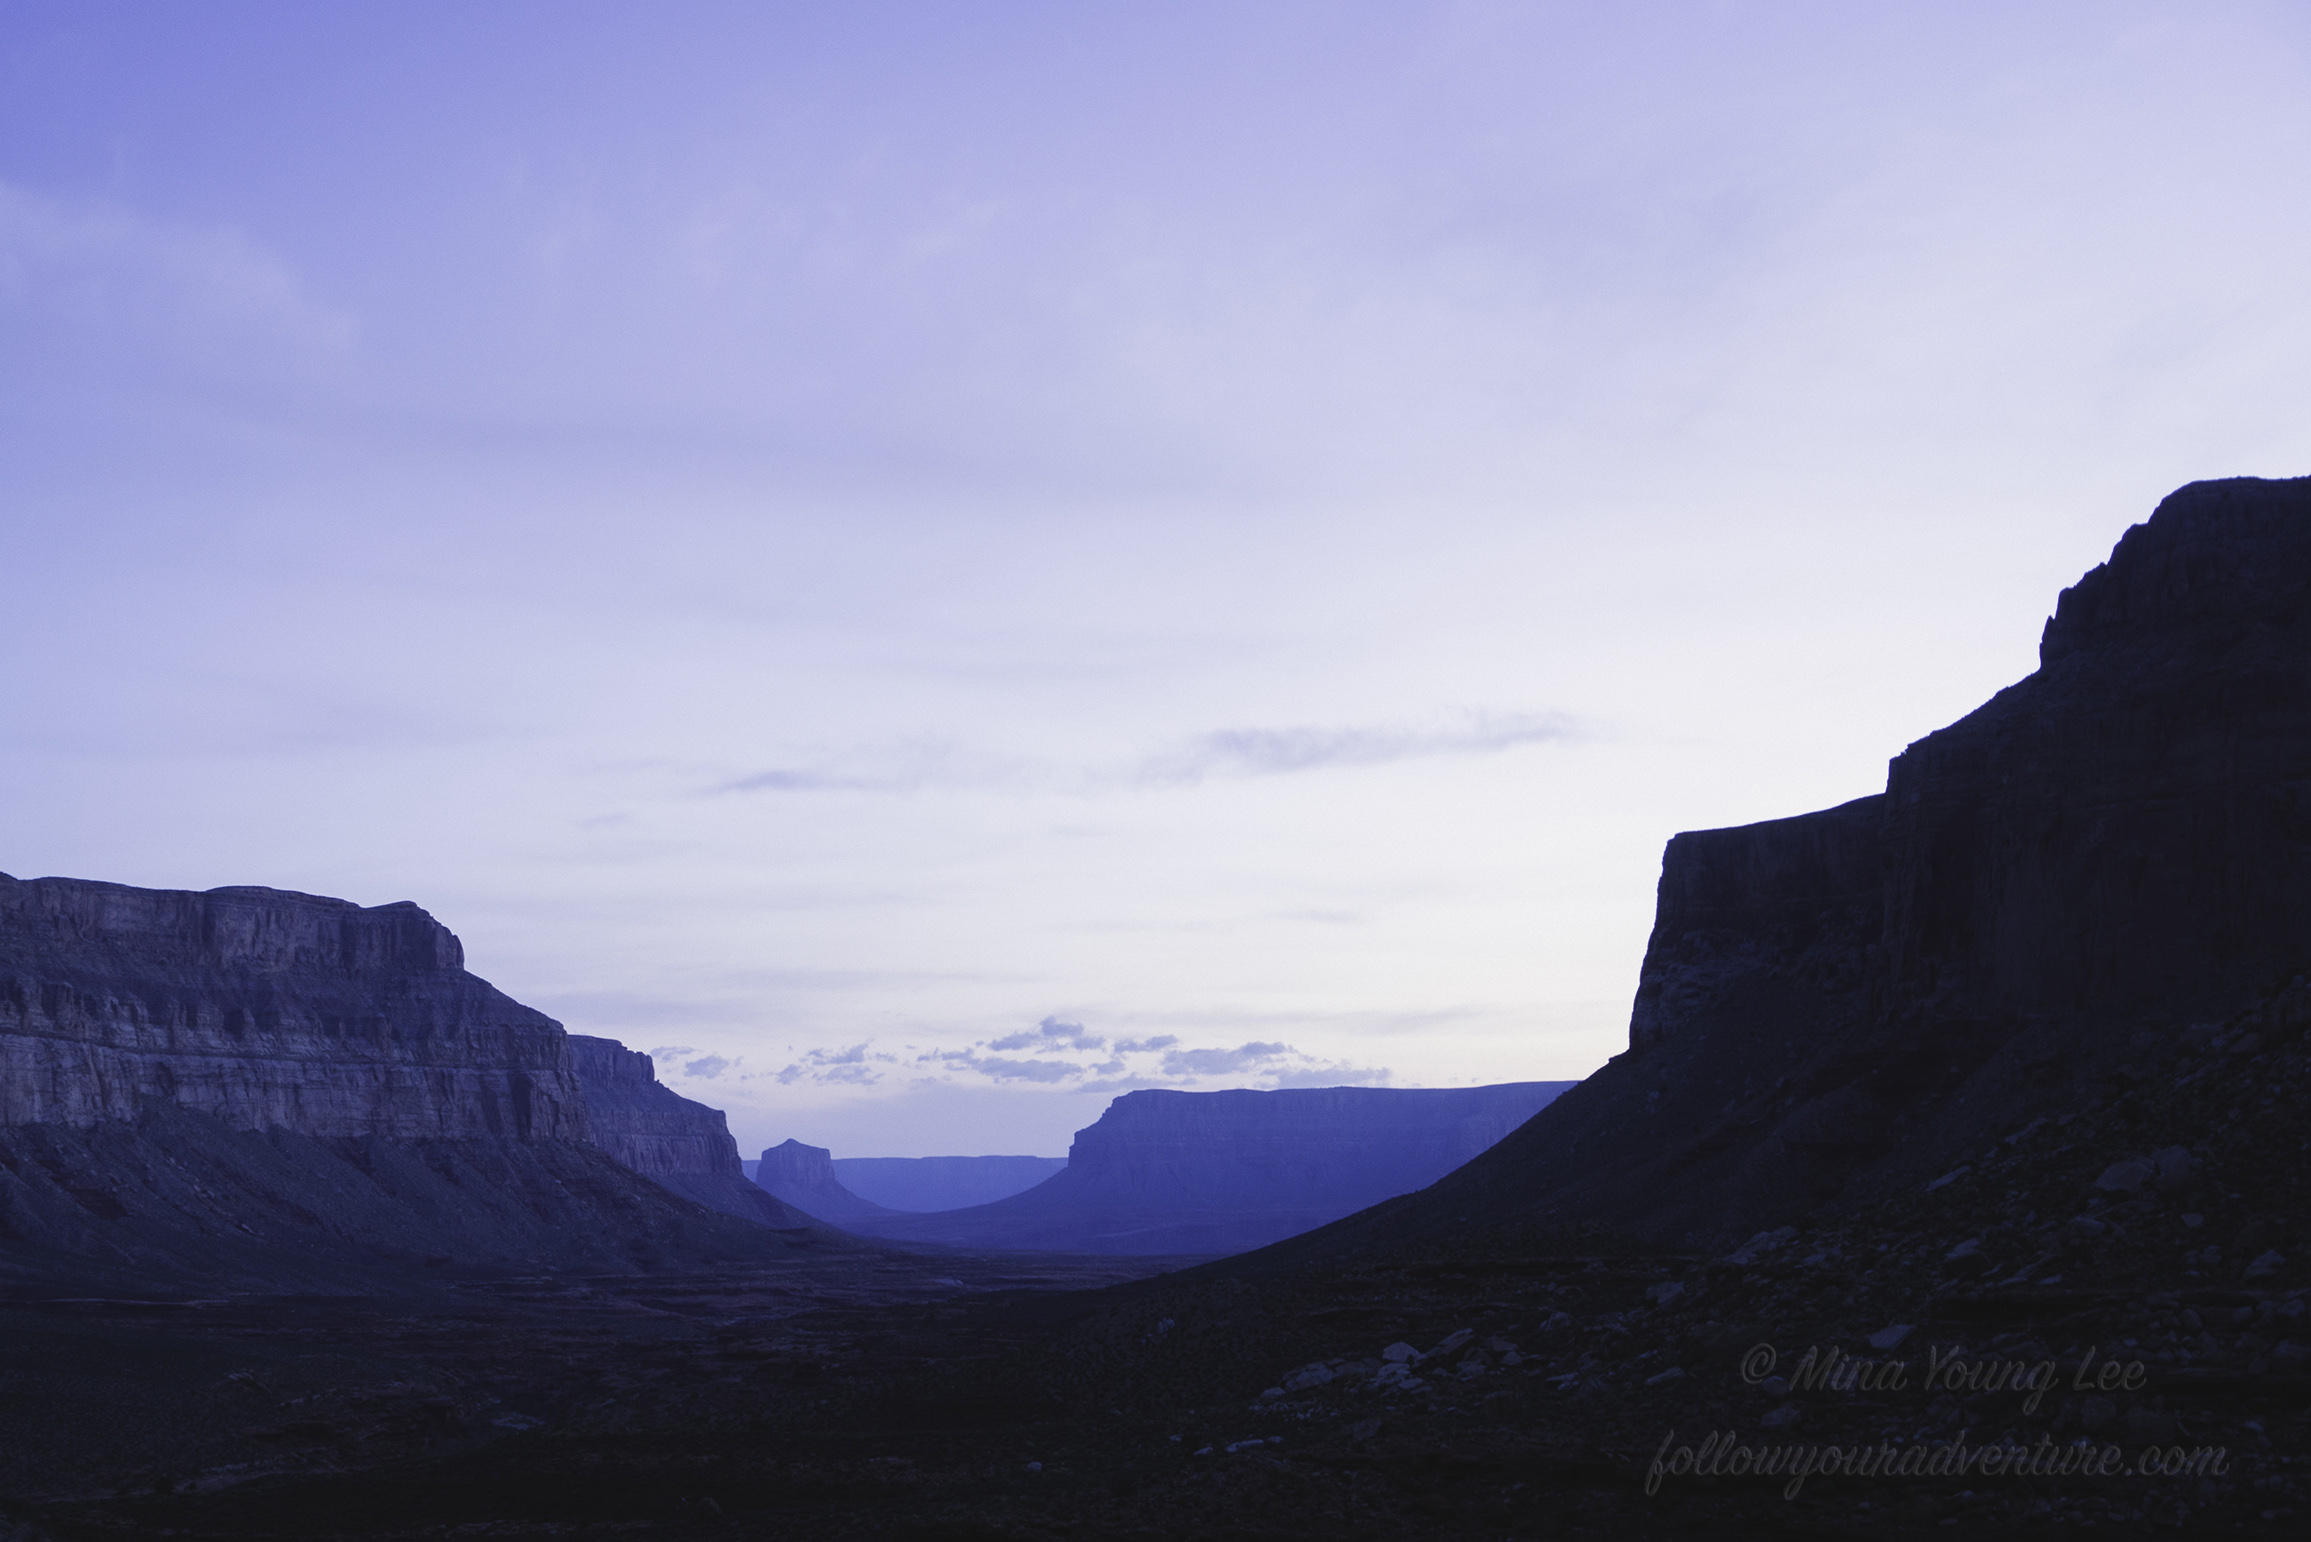 A blue glow fills the sky and canyon walls at dawn  Photograph by Mina Young Lee